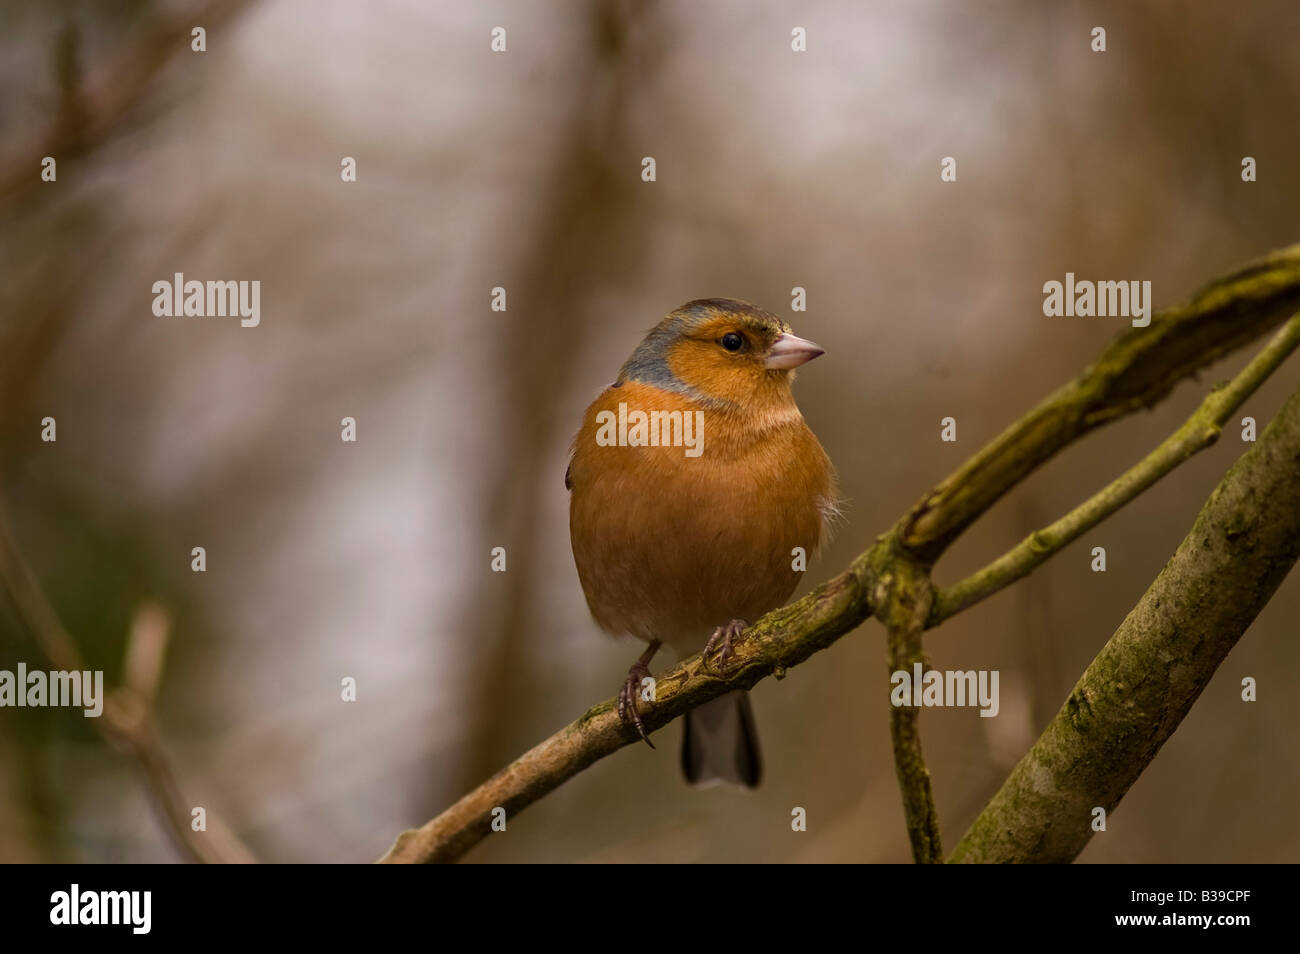 Chaffinches are one of our most vocal finches and can be seen in most gardens and in most parts of the countryside. - Stock Image